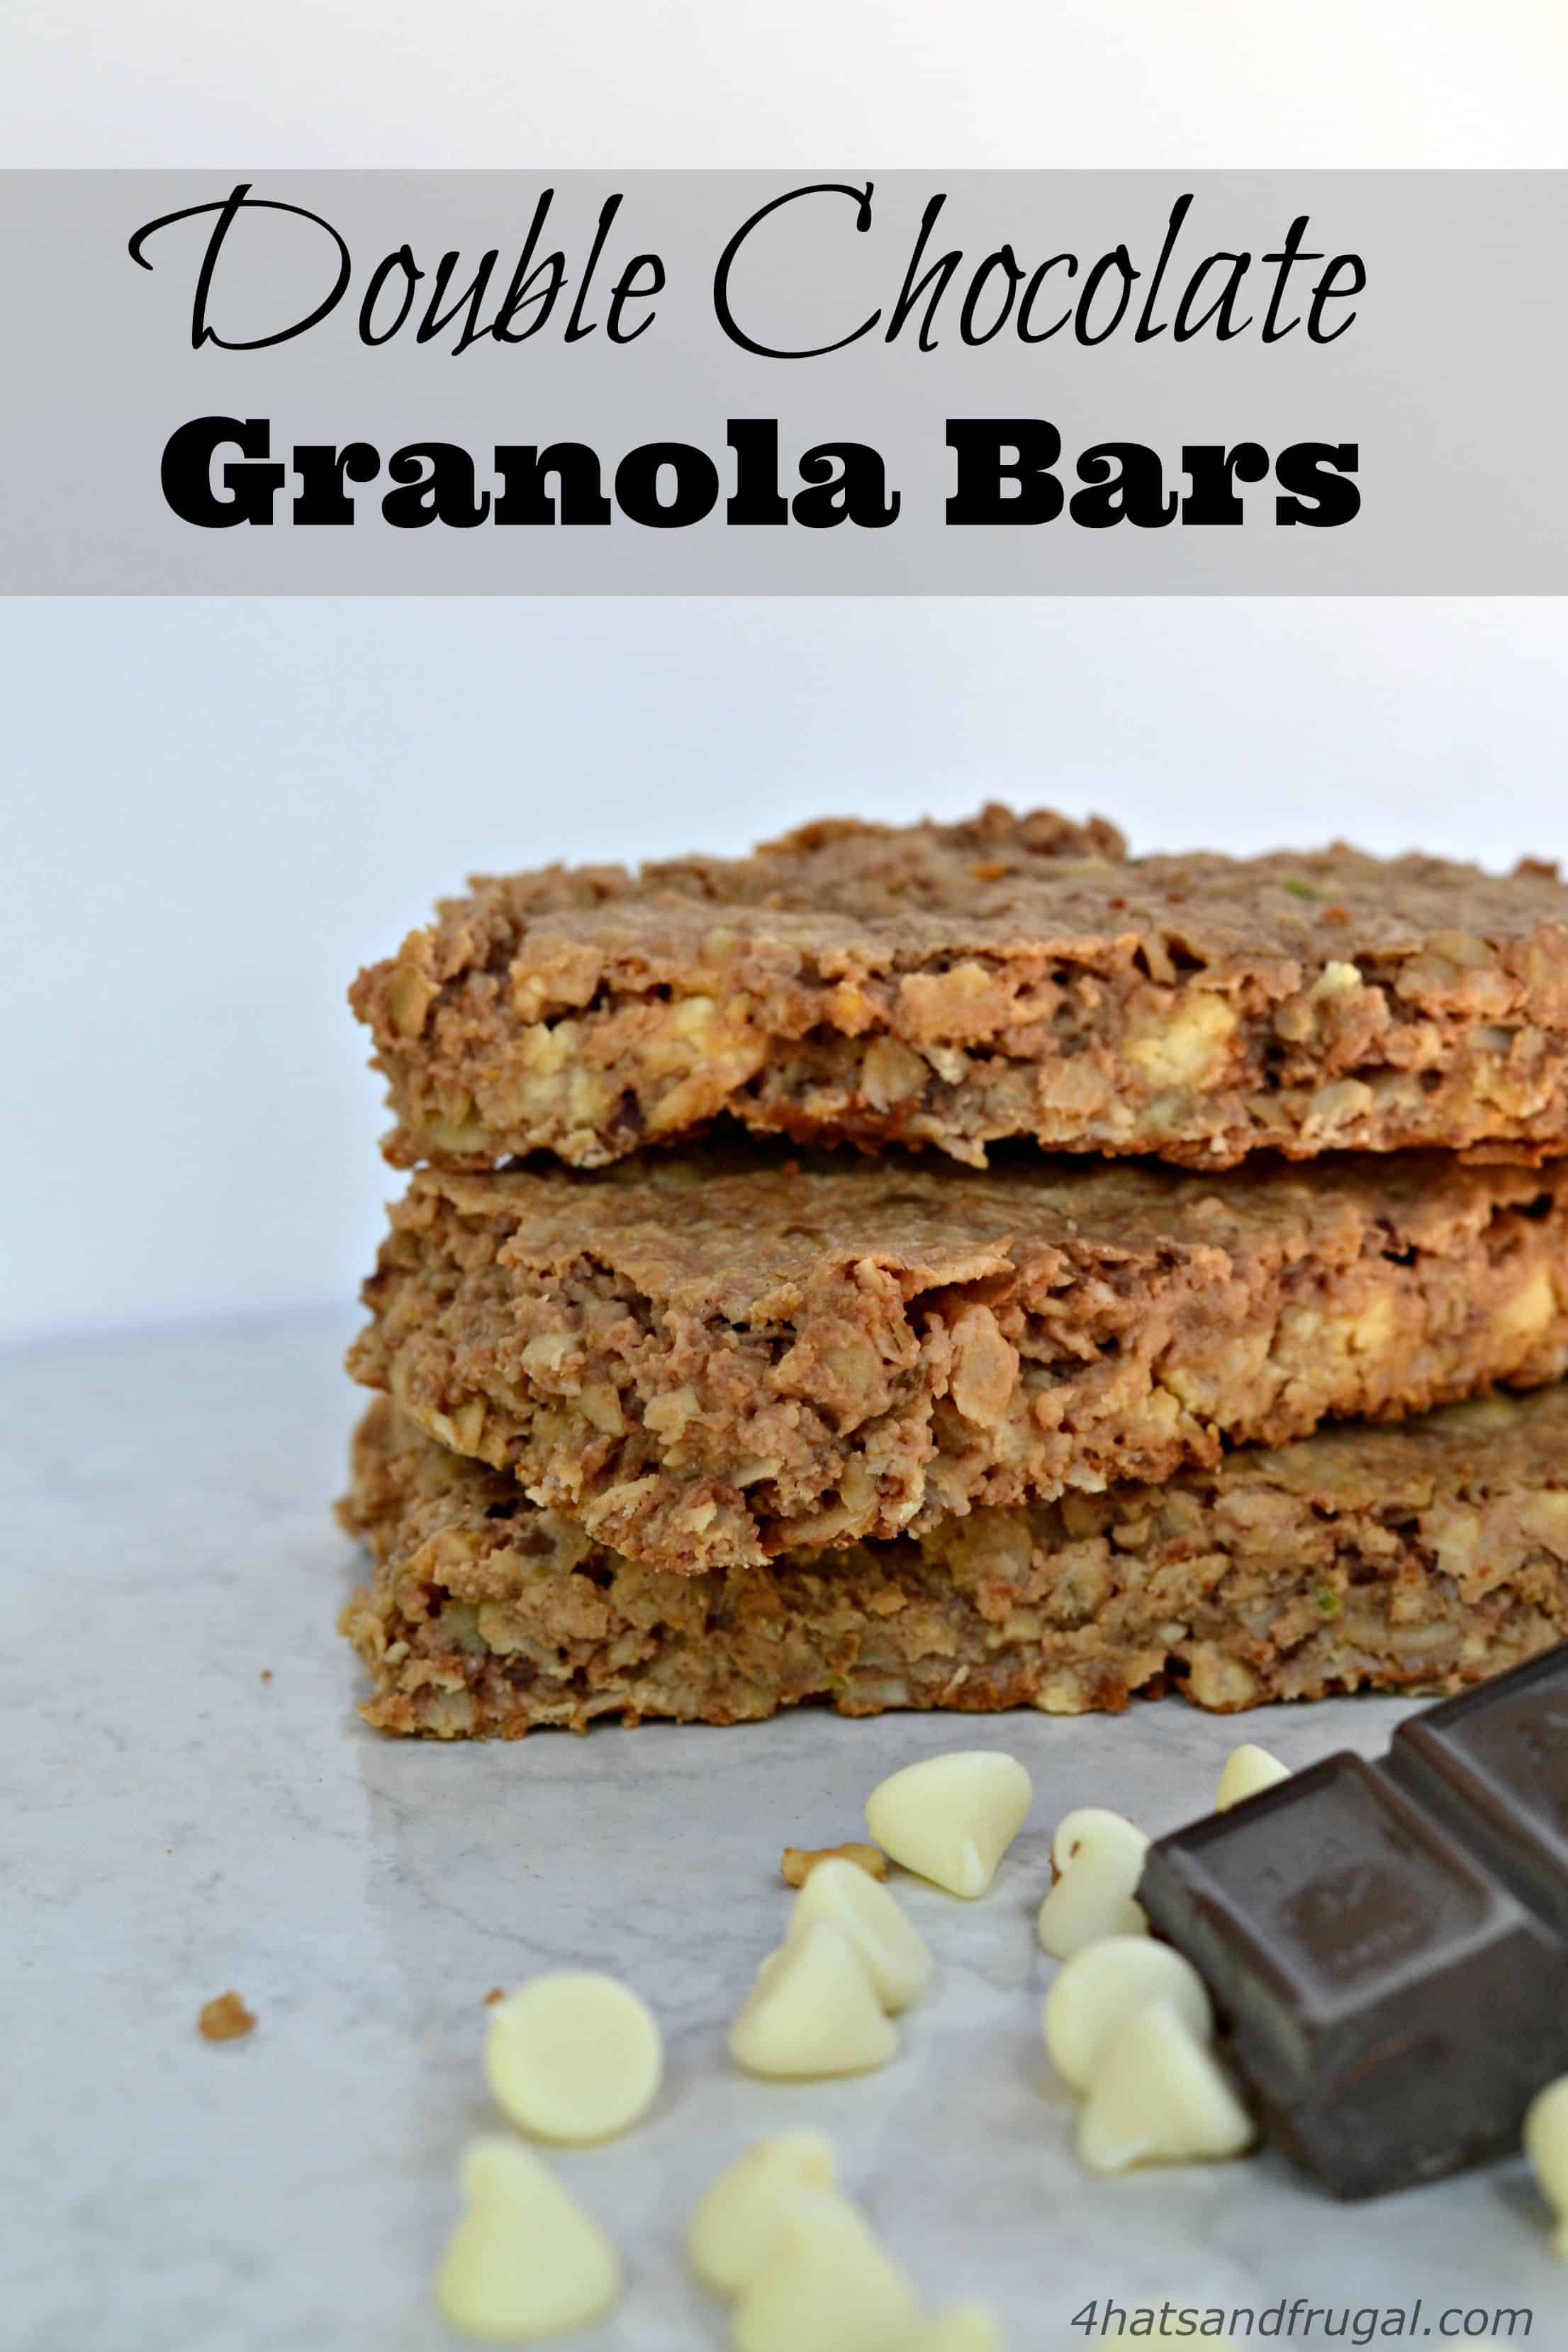 This super easy recipe for double chocolate granola bars takes less than 20 minutes to make.